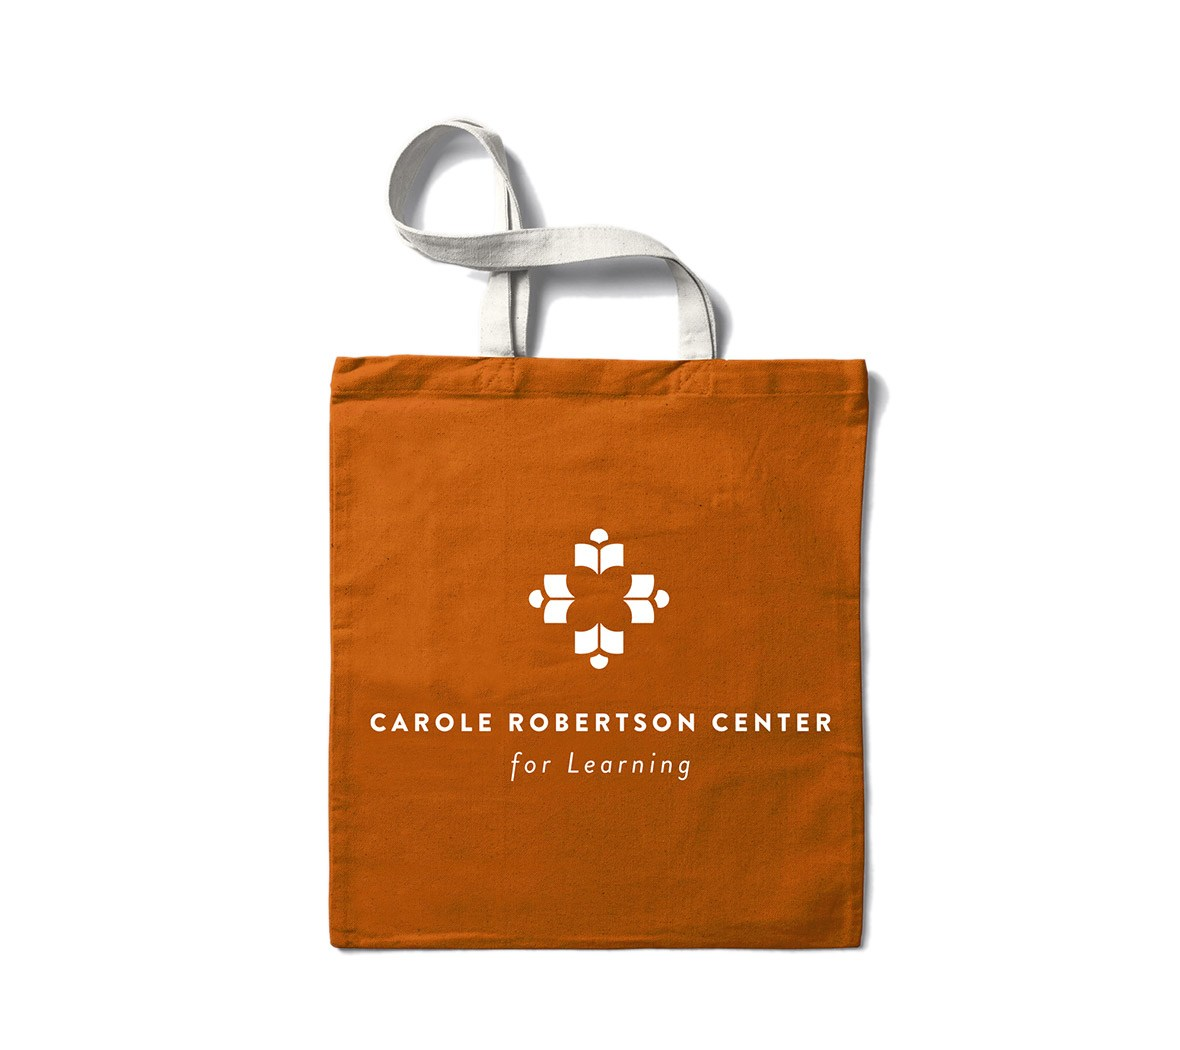 Carole Robertson Center for Learning tote bag